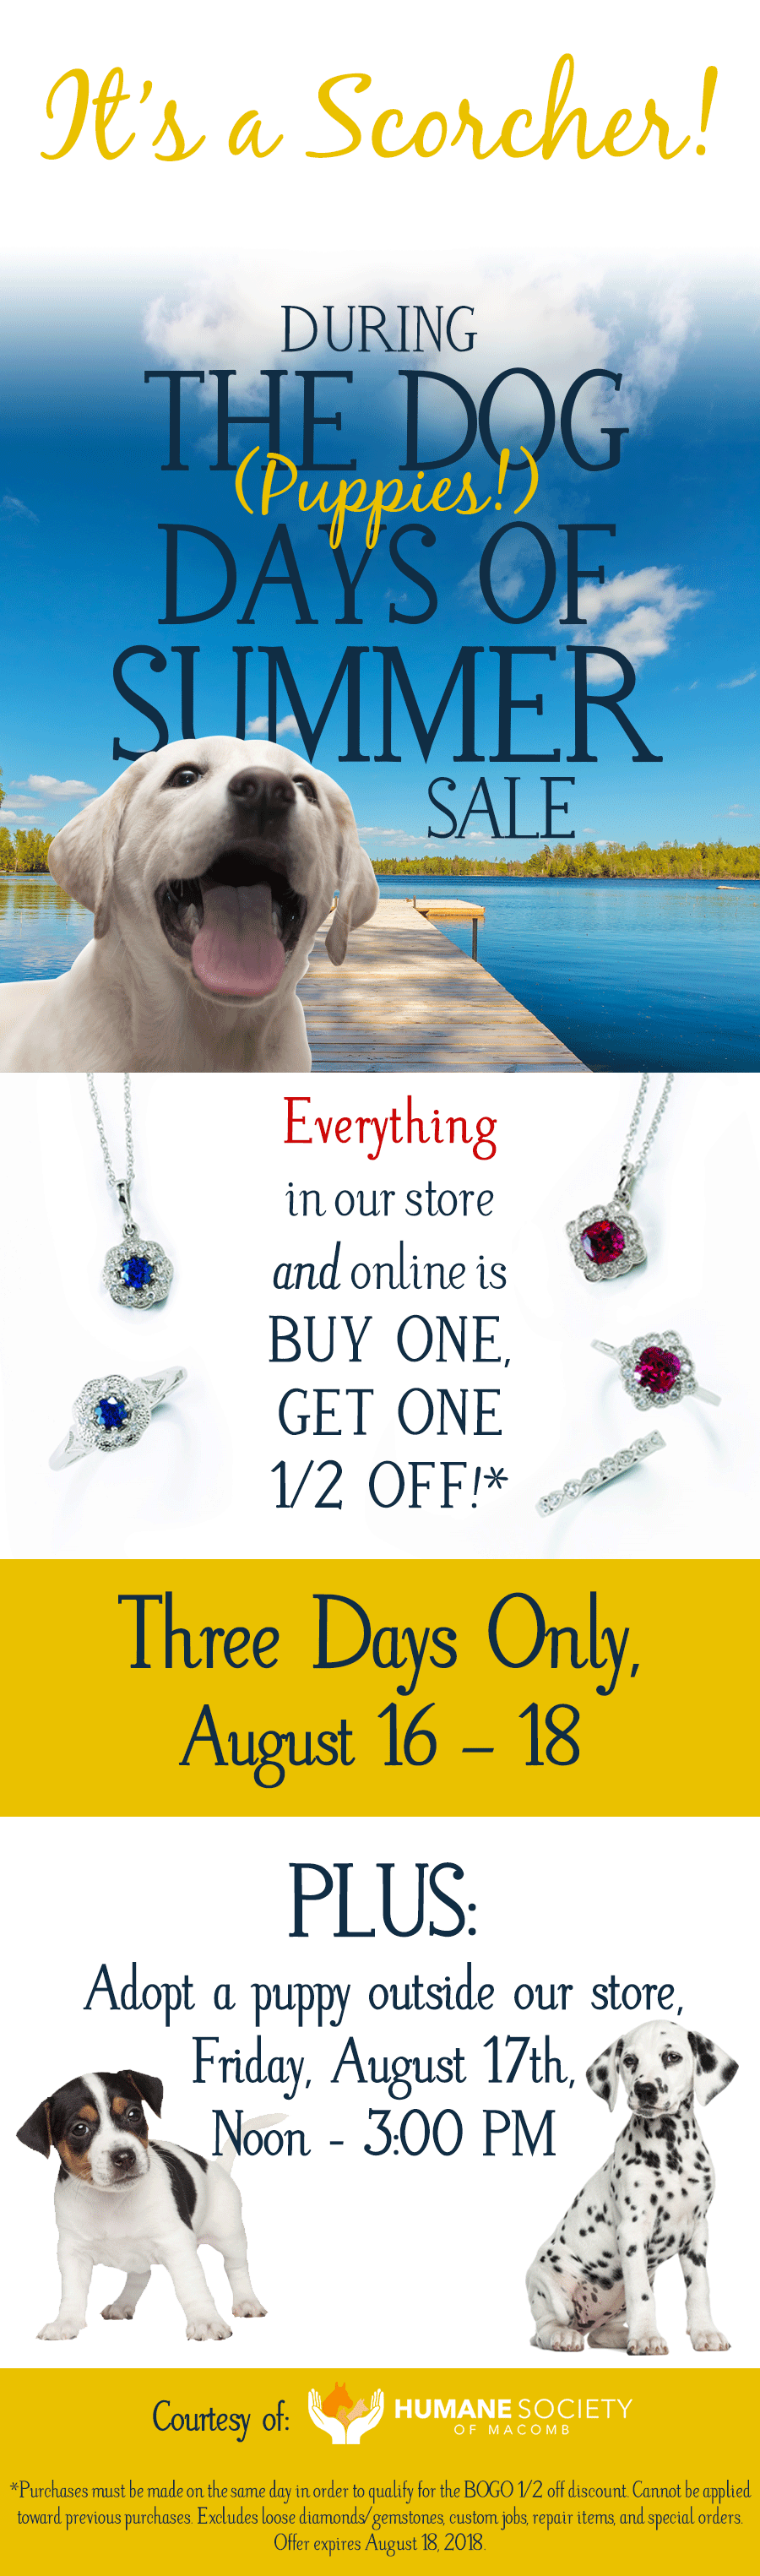 The Dog Days of Summer Jewelry Sale